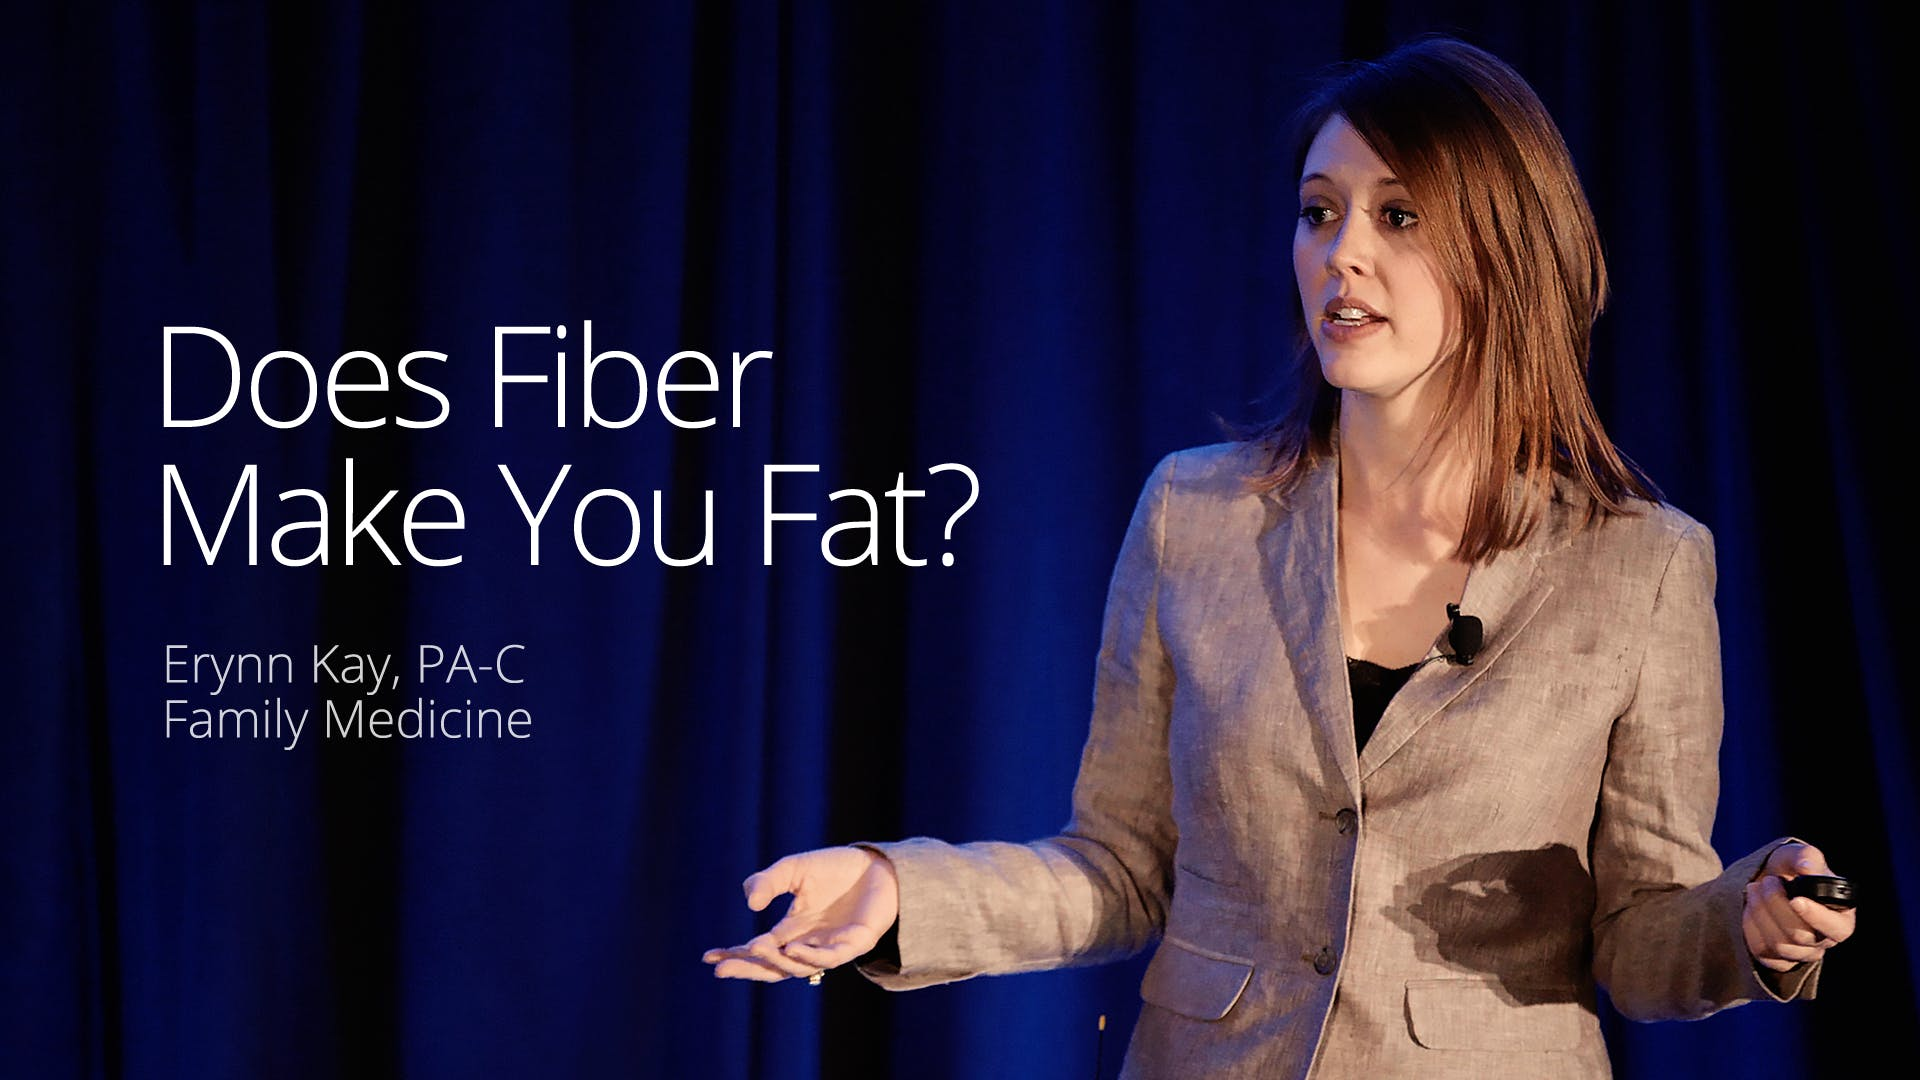 Does Fiber Make You Fat?